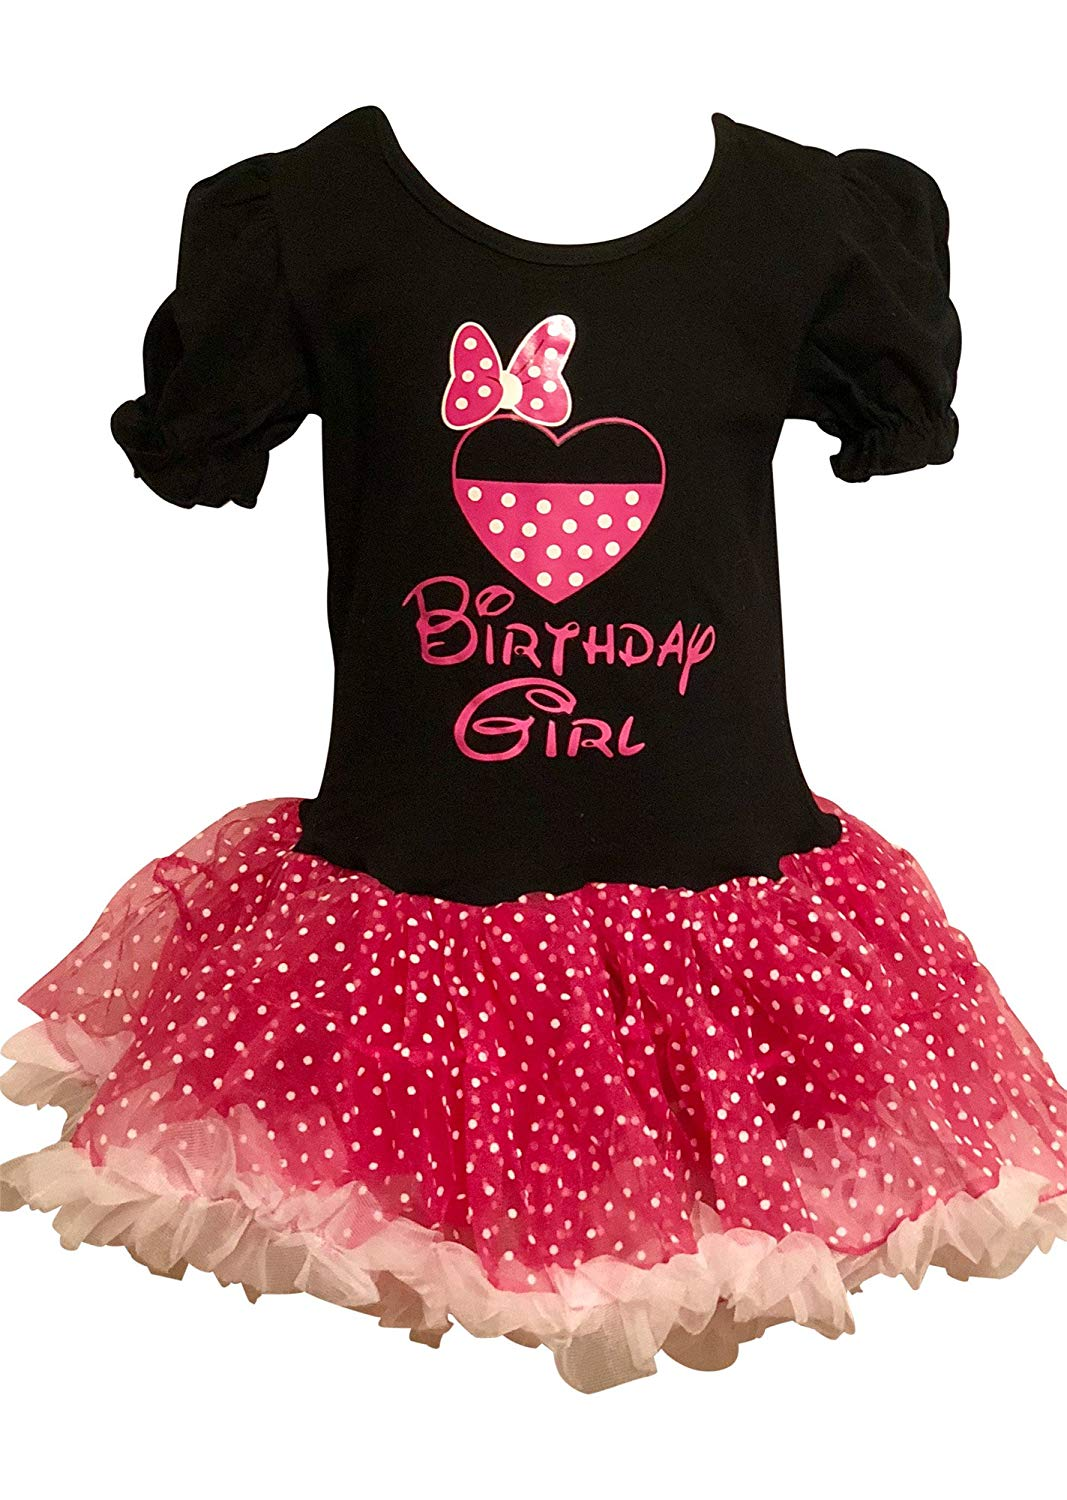 a90aa7679434d Cheap Mickey Mouse Tutu Dress, find Mickey Mouse Tutu Dress deals on ...